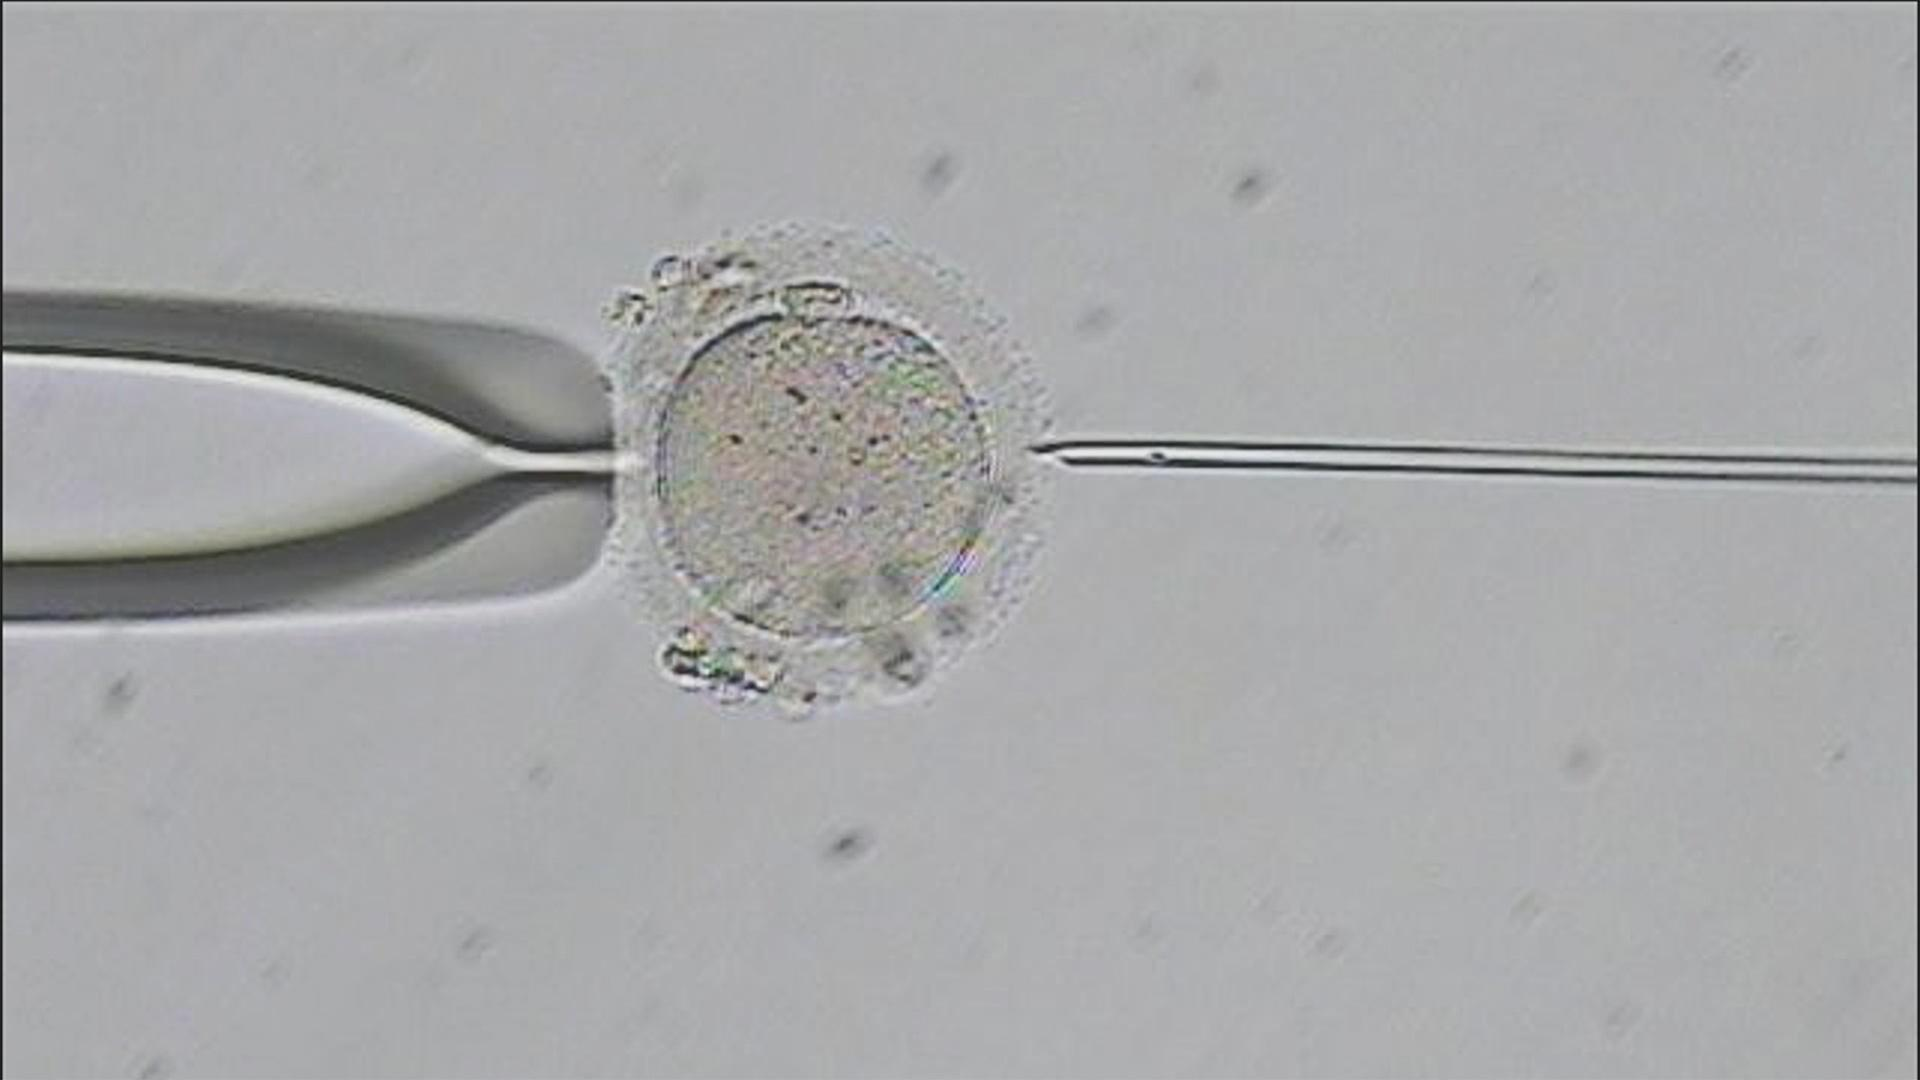 Image of in-vitro vertilization under a microscope.